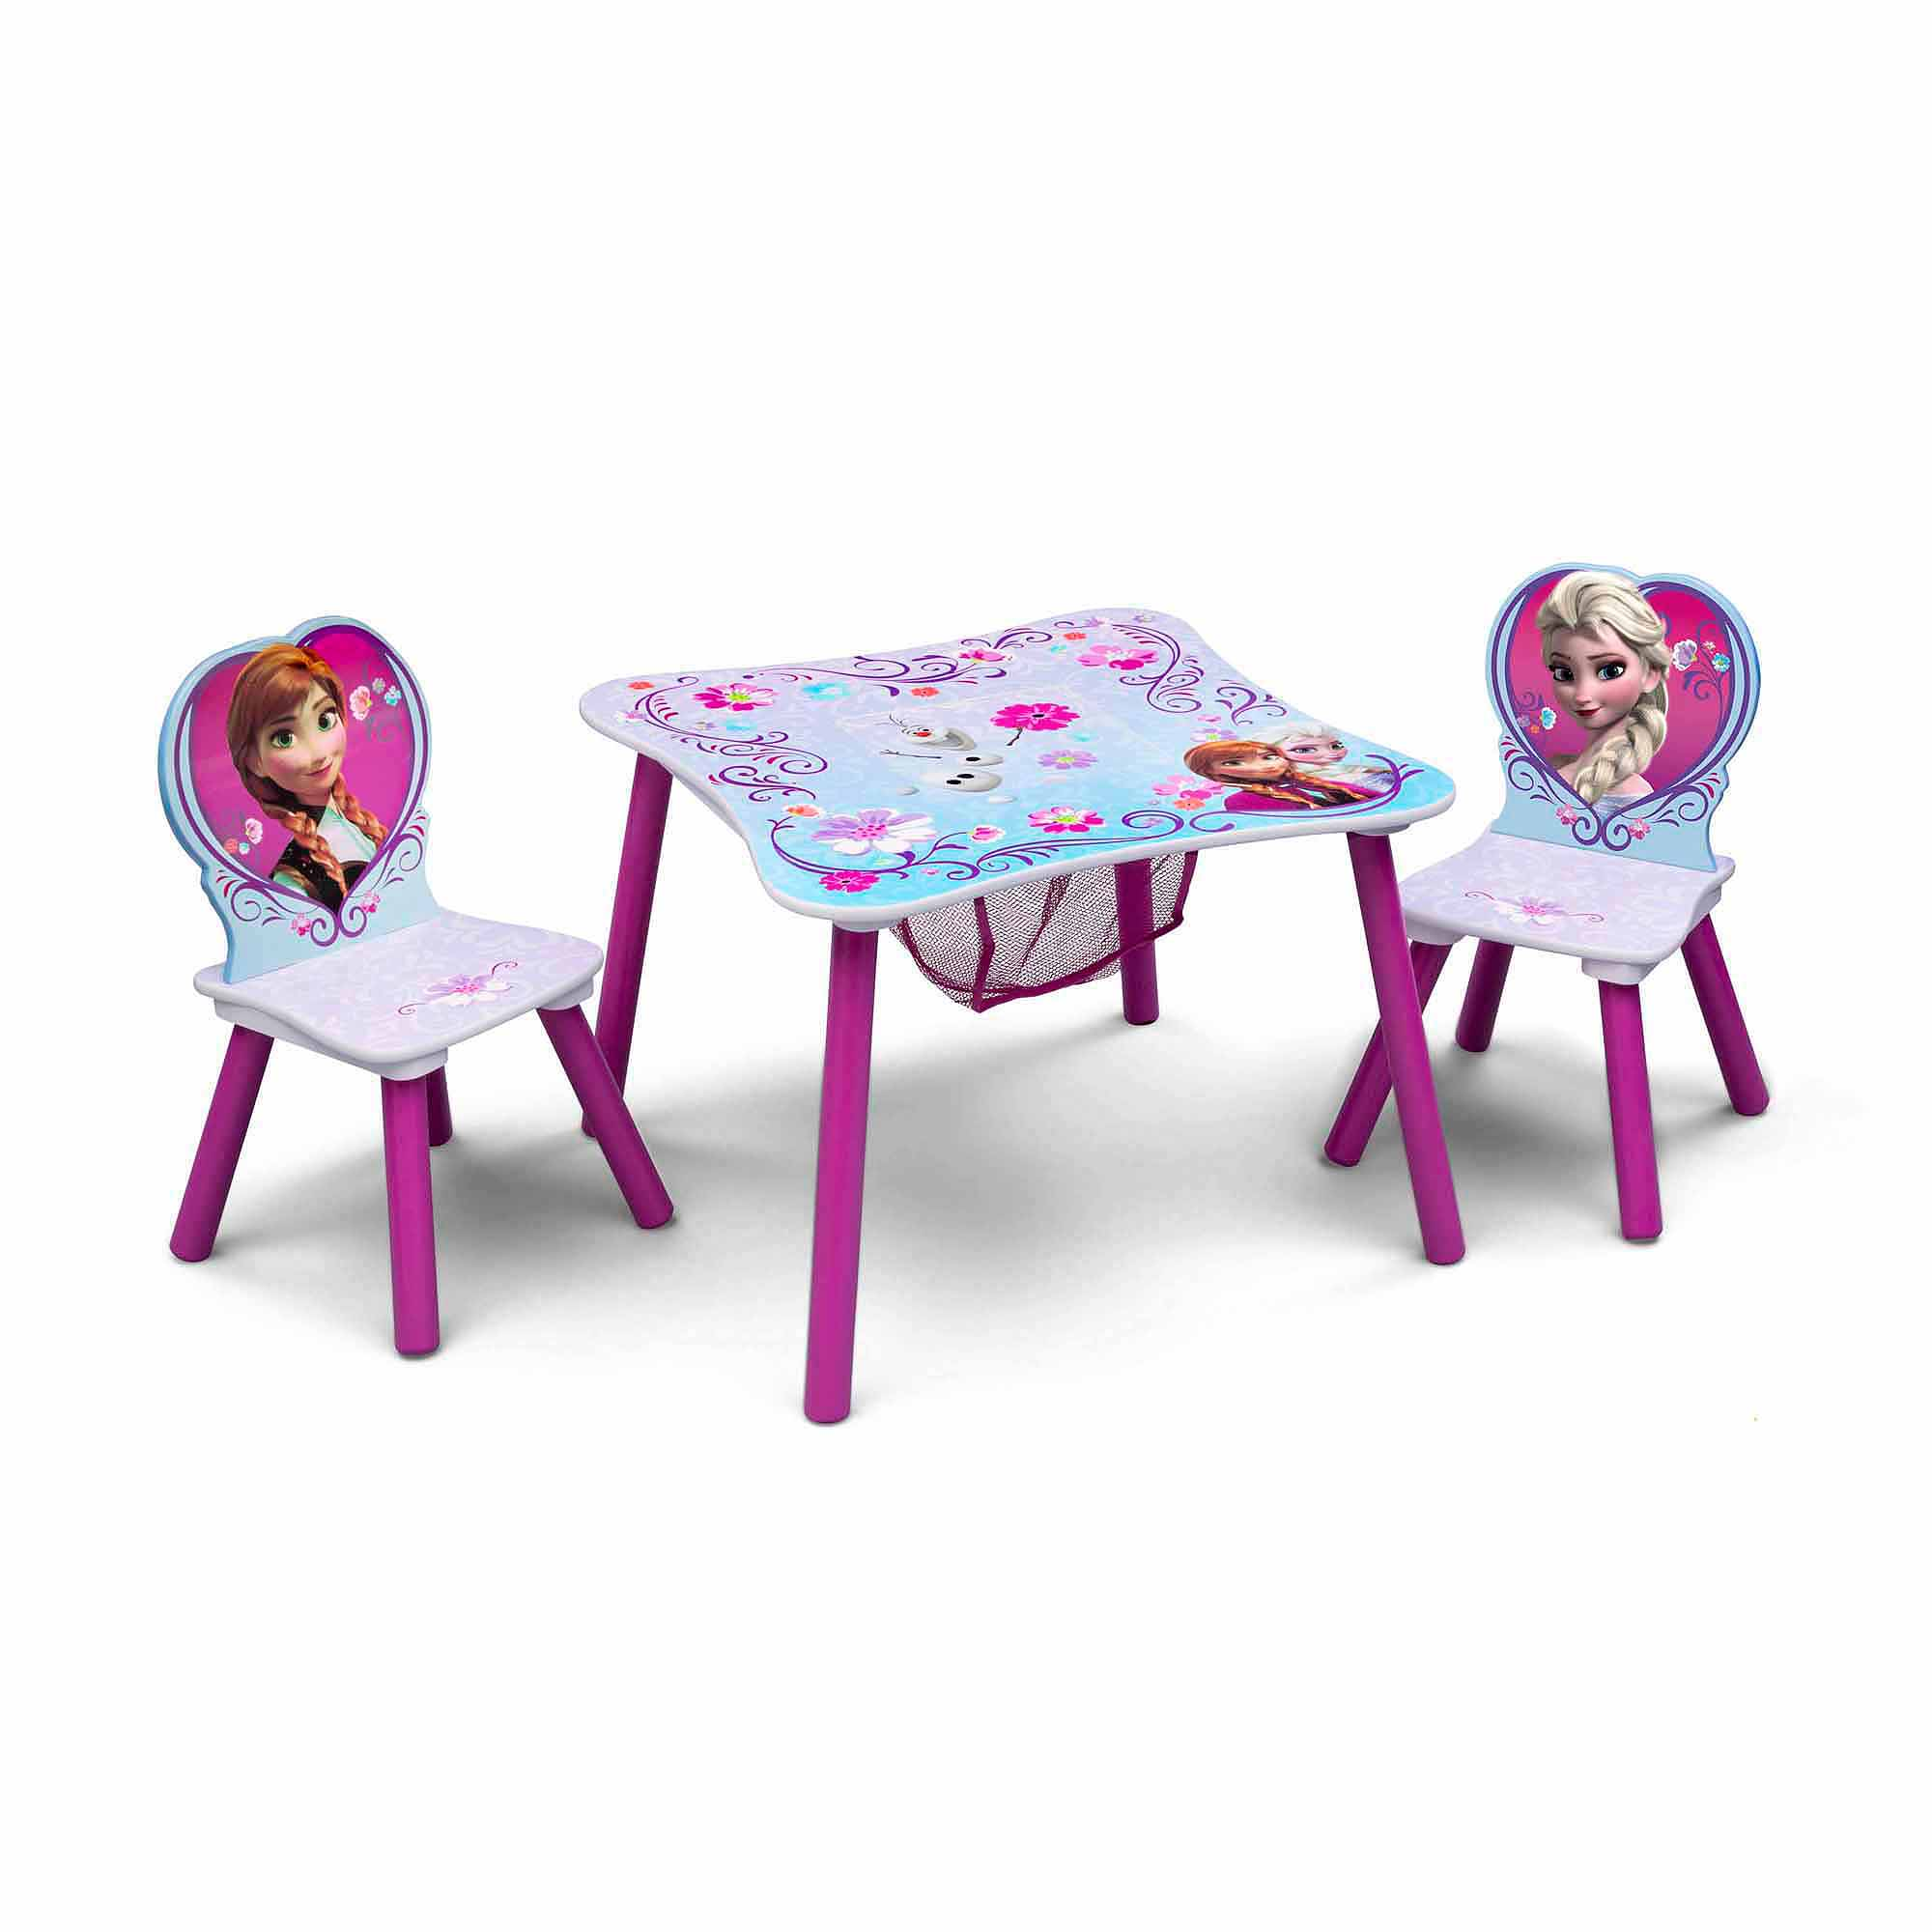 Frozen Toddler Table and Chair Set with Storage  sc 1 st  Walmart & Disney Princess Toddler Table and Chair Set with Storage - Walmart.com